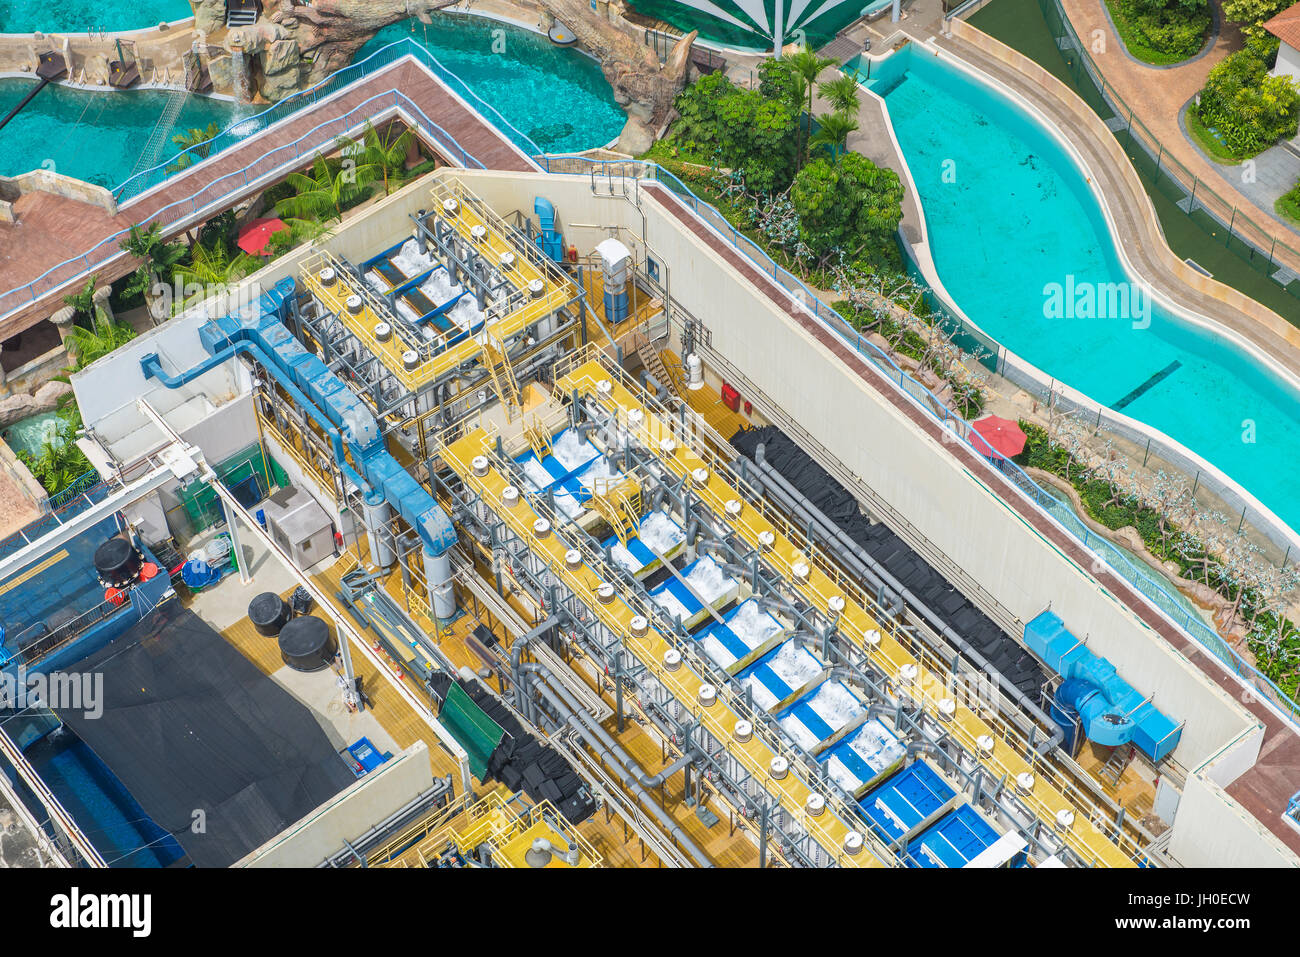 Water treatment plants stock photos water treatment - Swimming pool water treatment plant ...